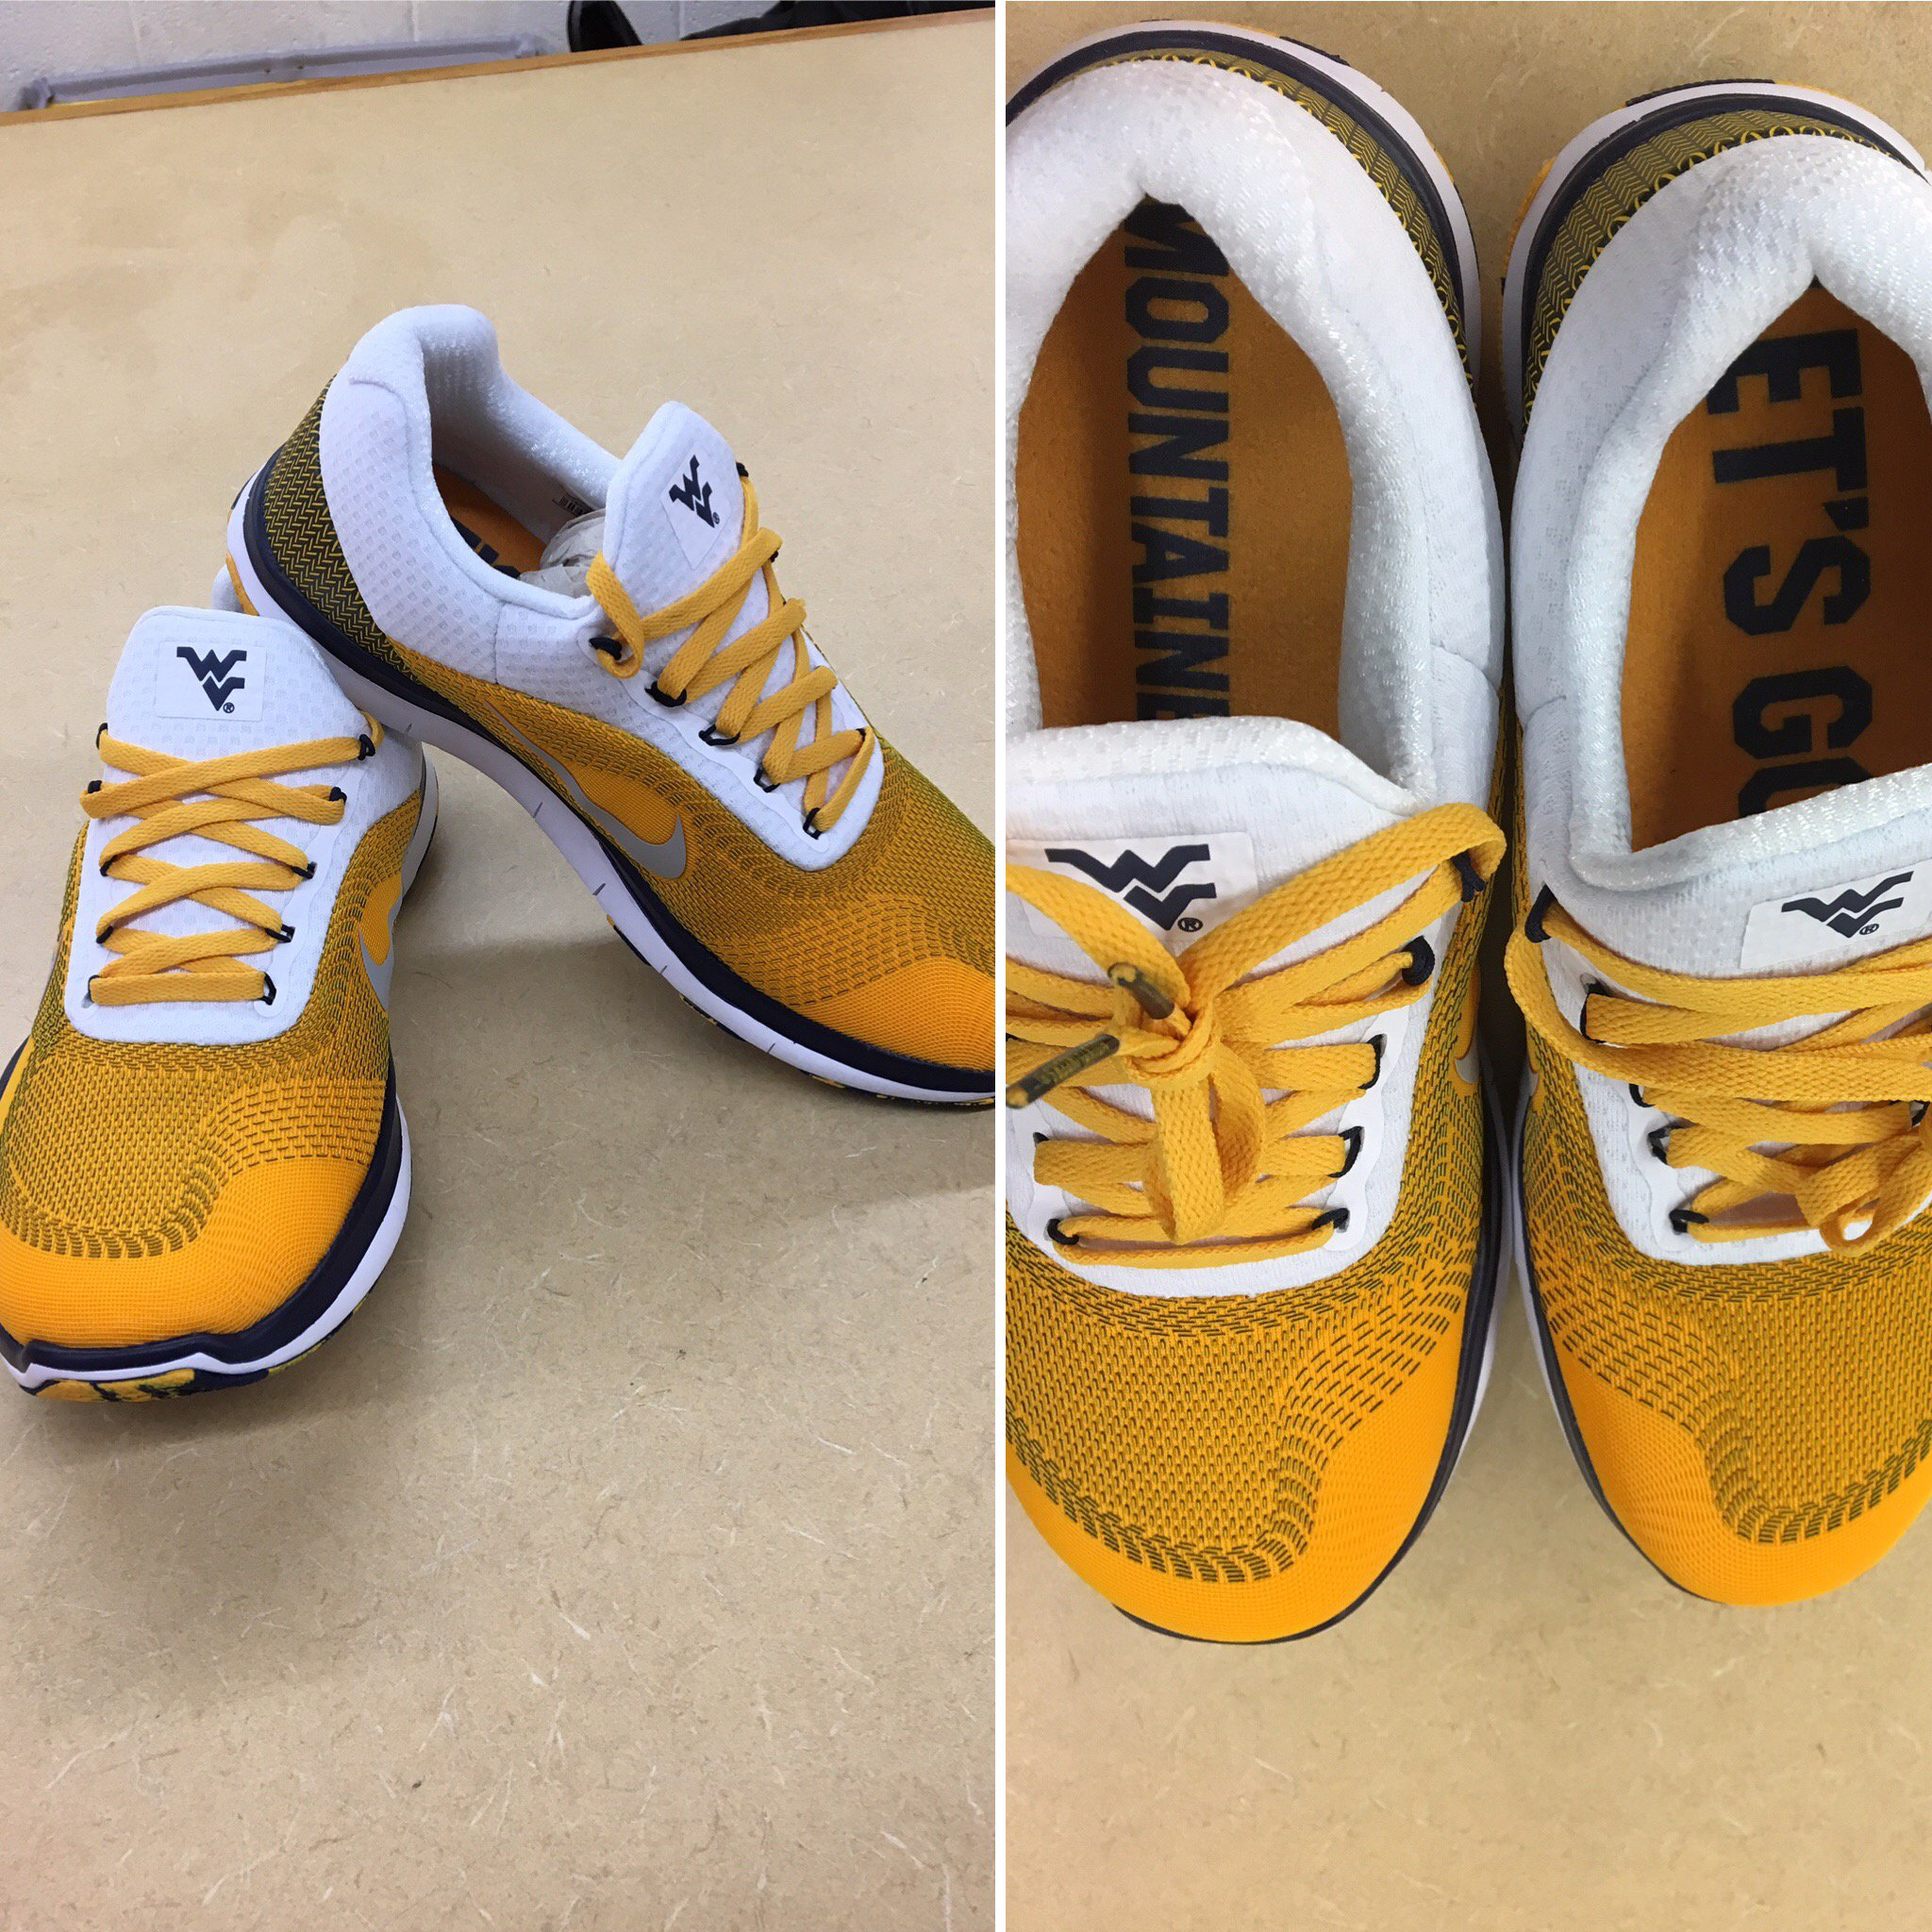 "WVU Sports On Twitter: ""Check Out These #WVU Nike Shoes"